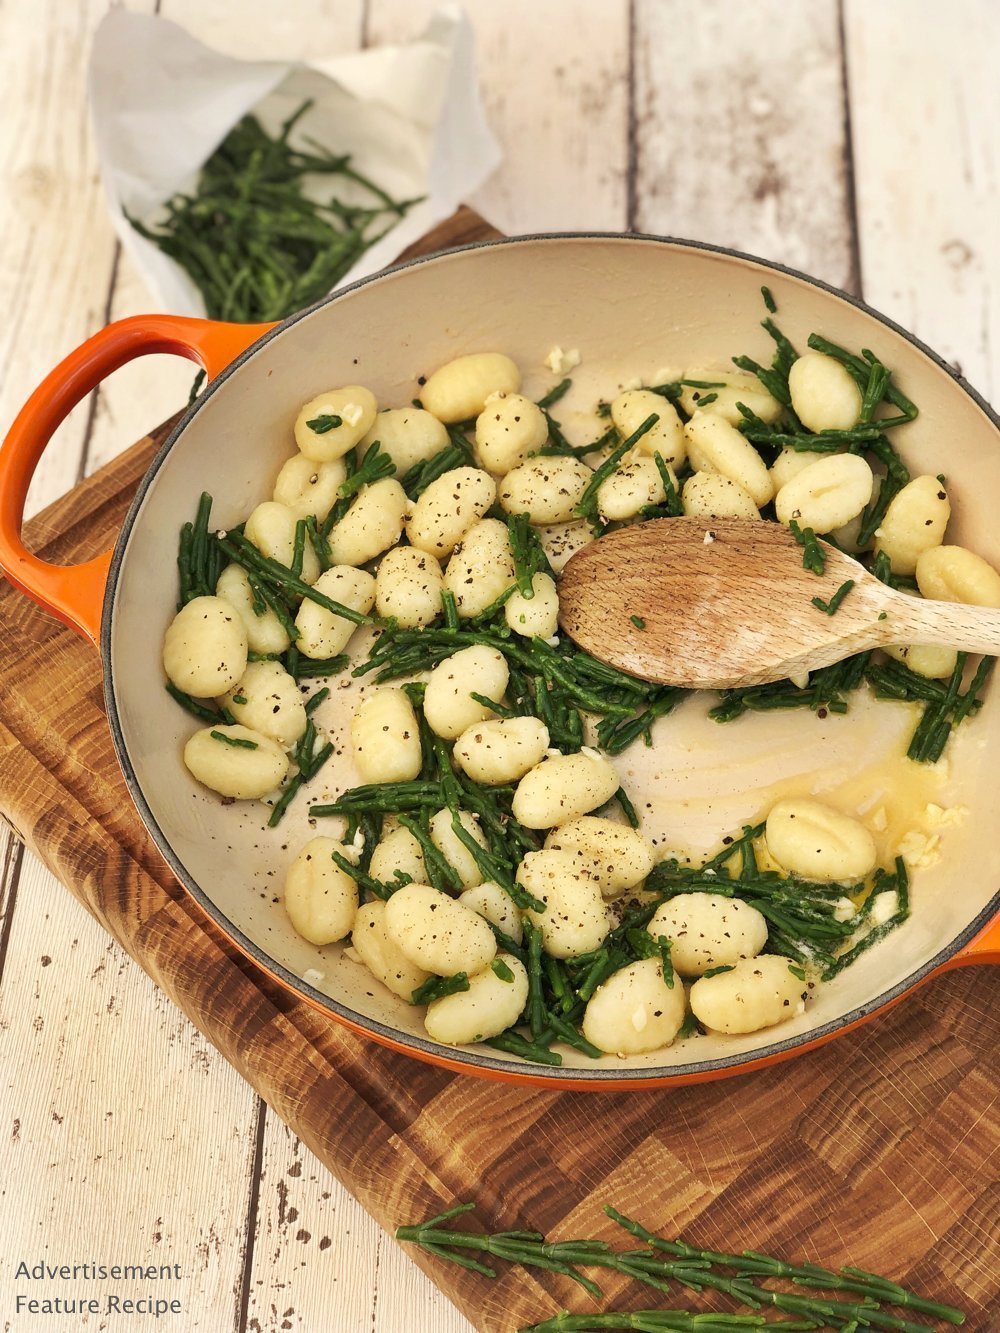 Recipe for Samphire with Gnocchi and Garlic Butter